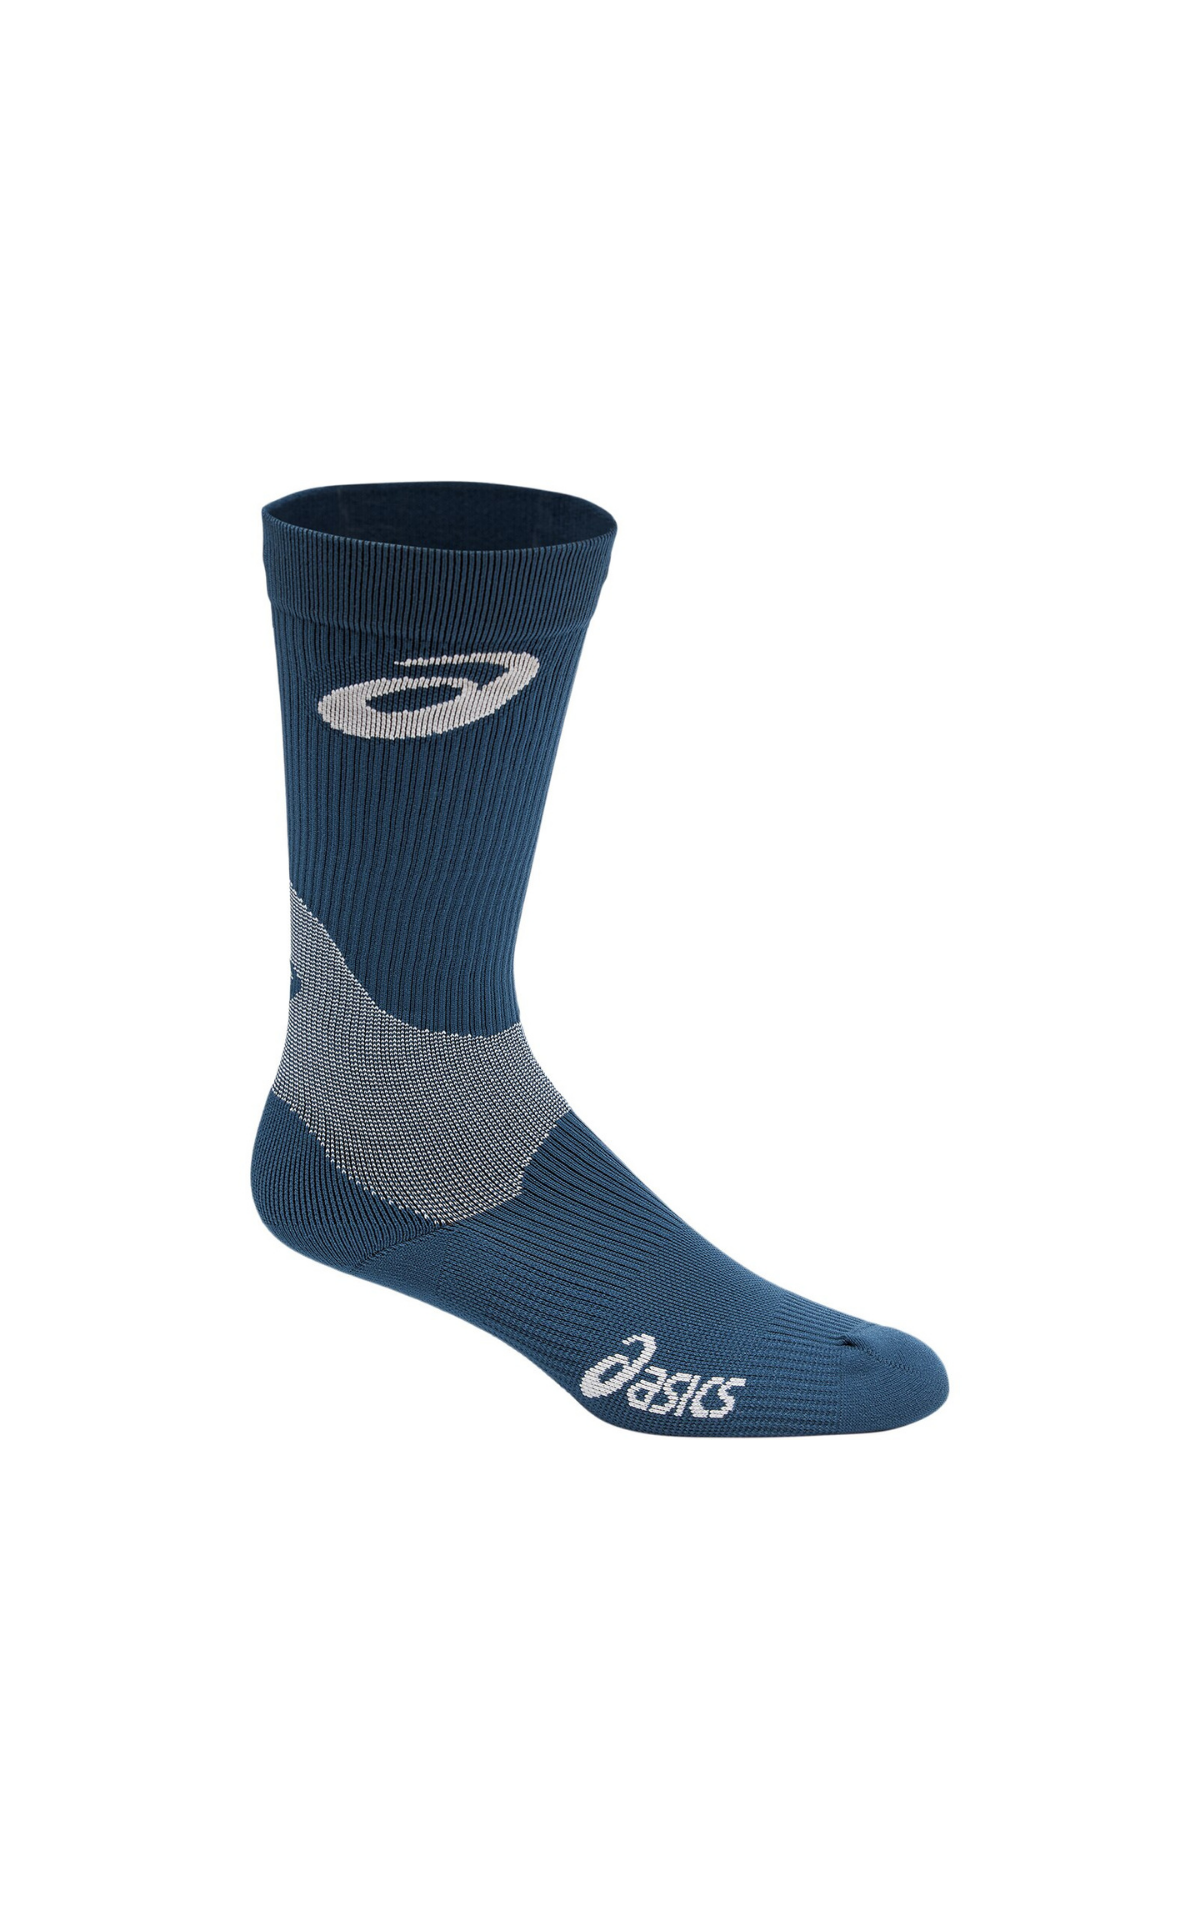 Asics LB compression socks at The Bicester Village Shopping Collection